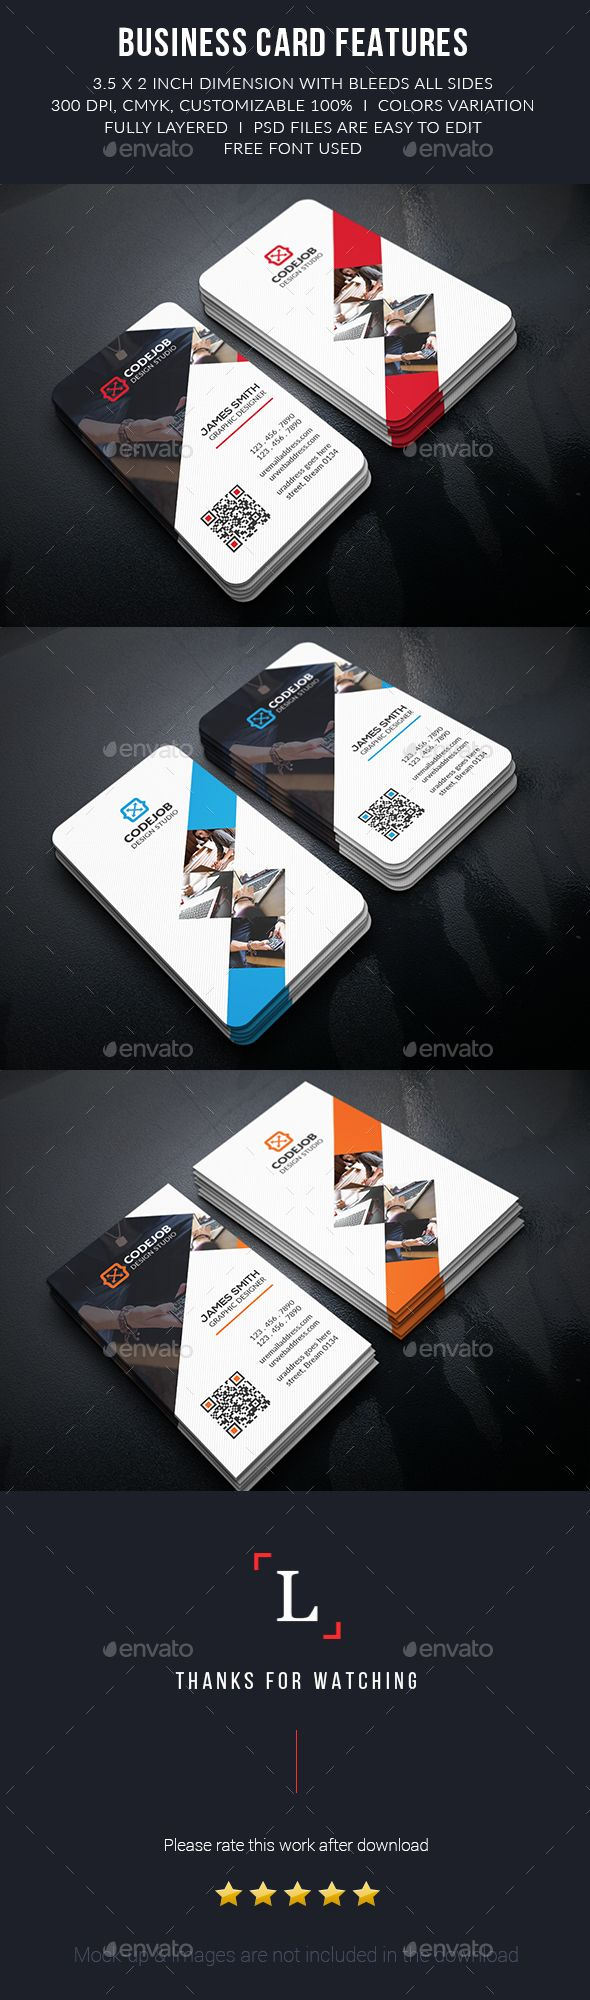 Corporate Business Cards Template PSD #visitcard #design Download: http://graphicriver.net/item/corporate-business-cards/13497196?ref=ksioks